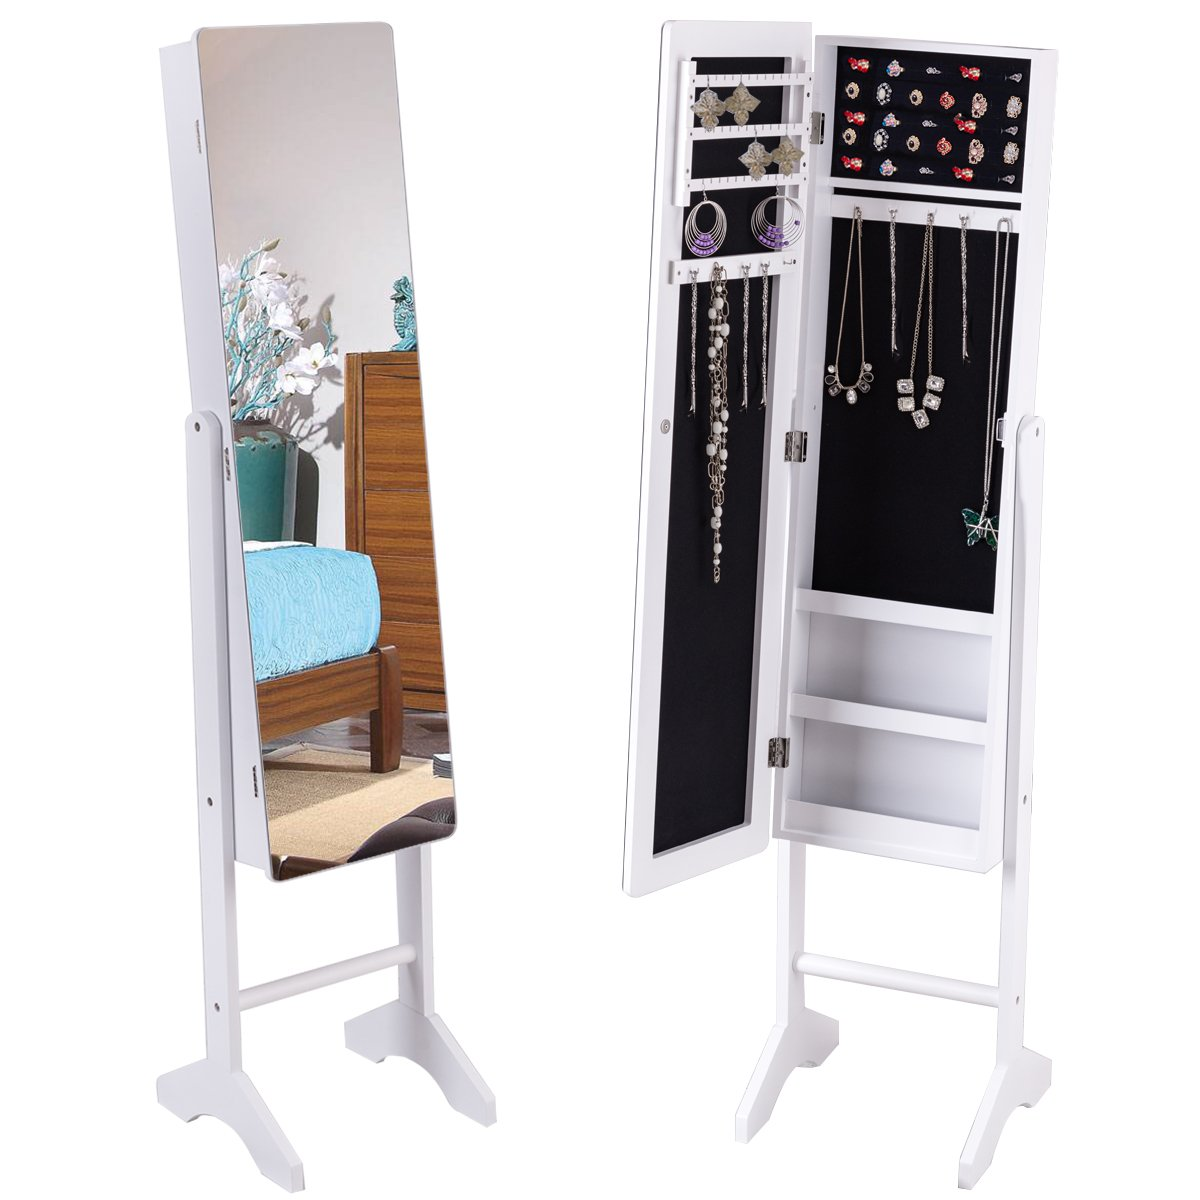 Giantex Free Standing Mirrored Jewelry Cabinet Armoire Lockable Storage Organizer Mirror Rings White